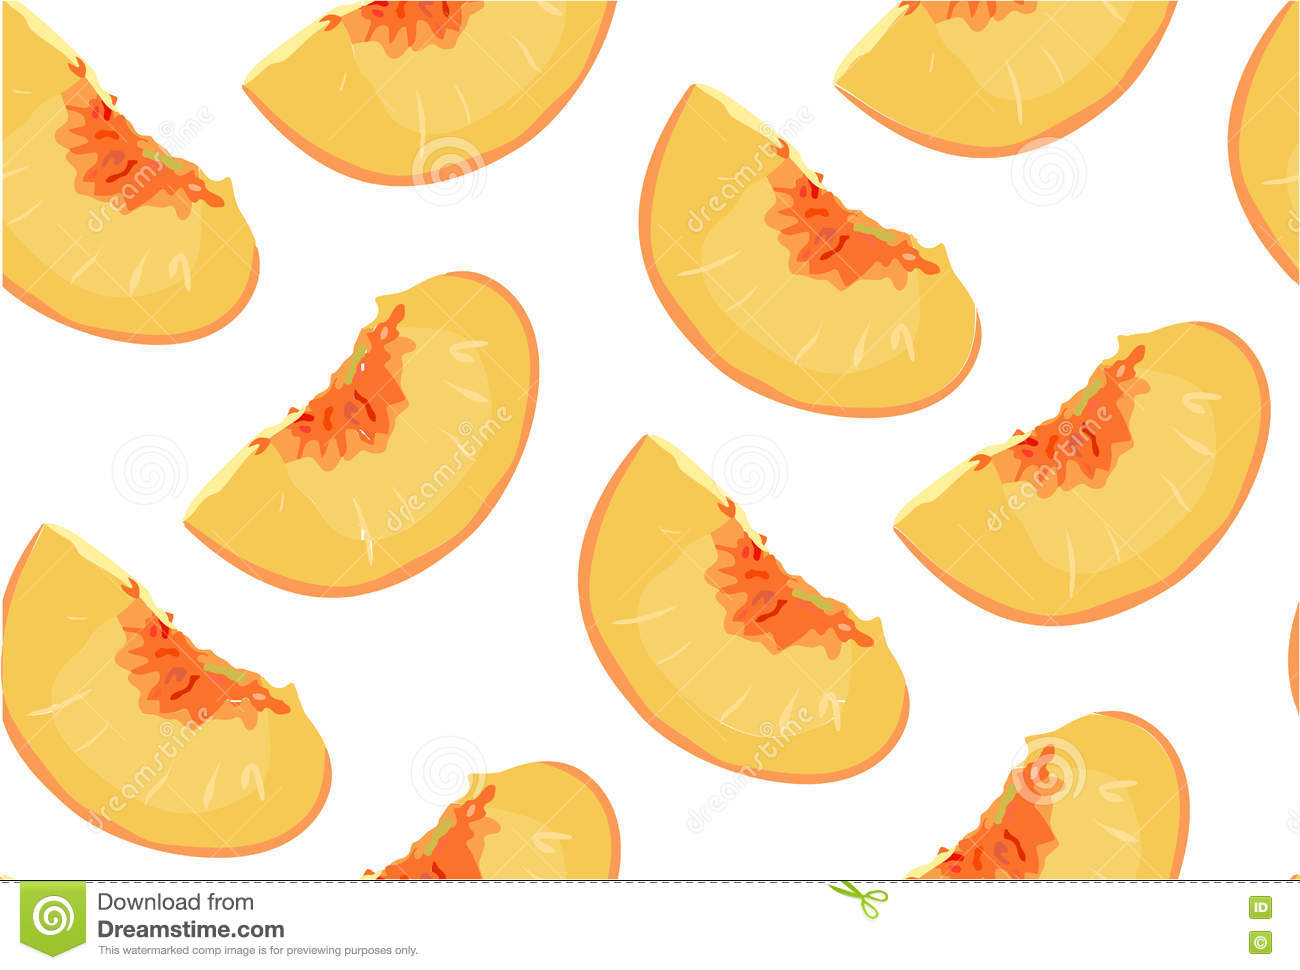 hight resolution of peach nectarine ripe fresh sliced fruit citrus seamless pattern vector square closeup side view beautiful orange